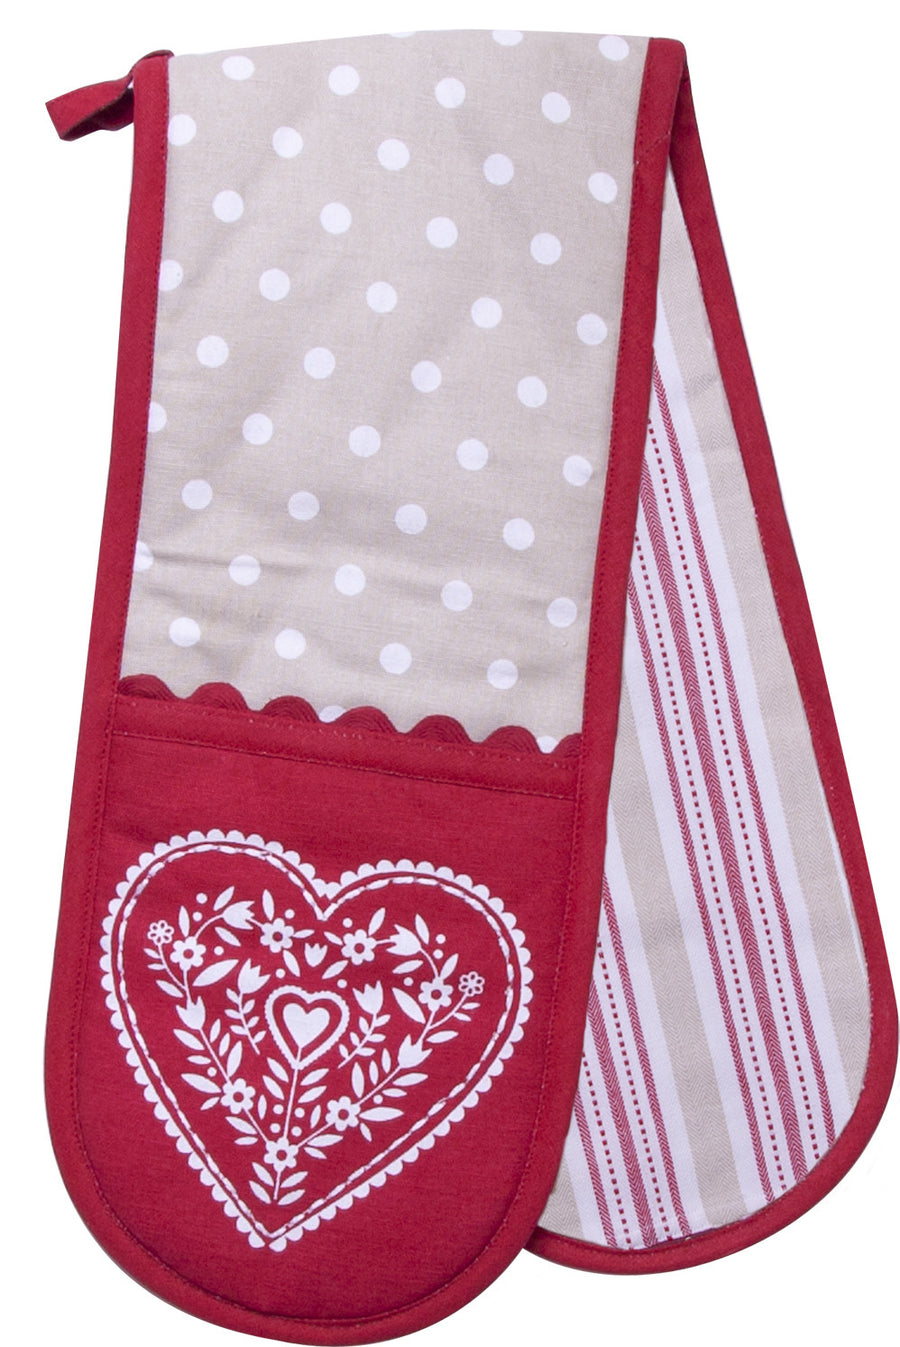 Sabichi Cosy Kitchen Double Oven Glove-161000 - Homely Nigeria